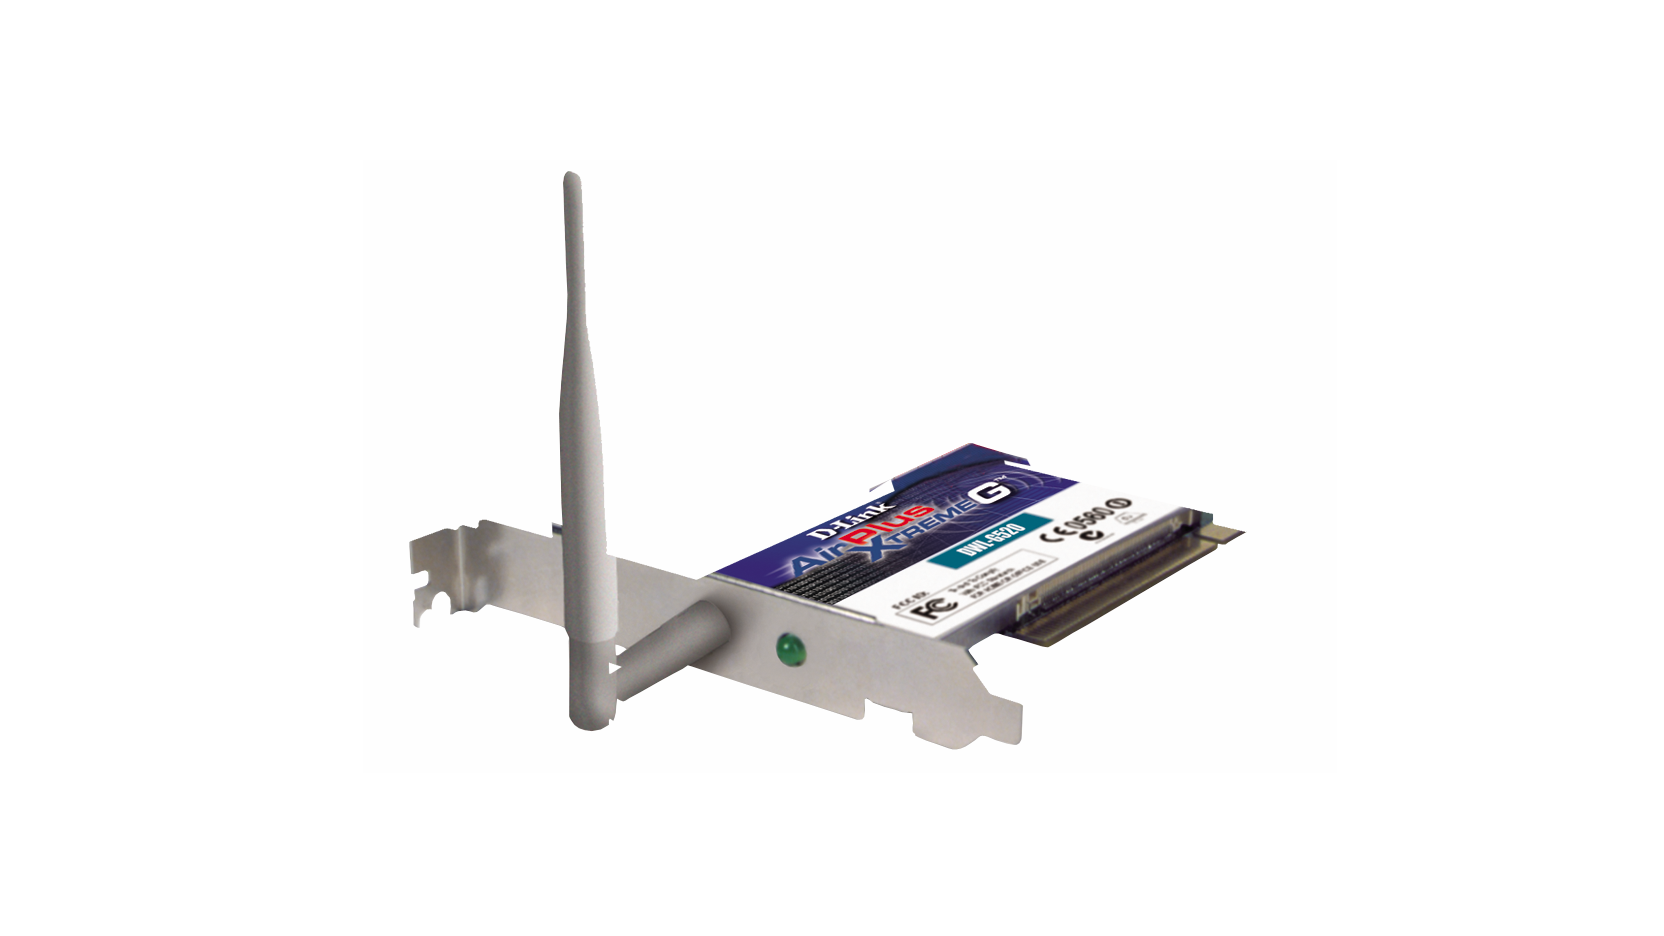 D-LINK DWL-G510 B1 DRIVERS FOR PC